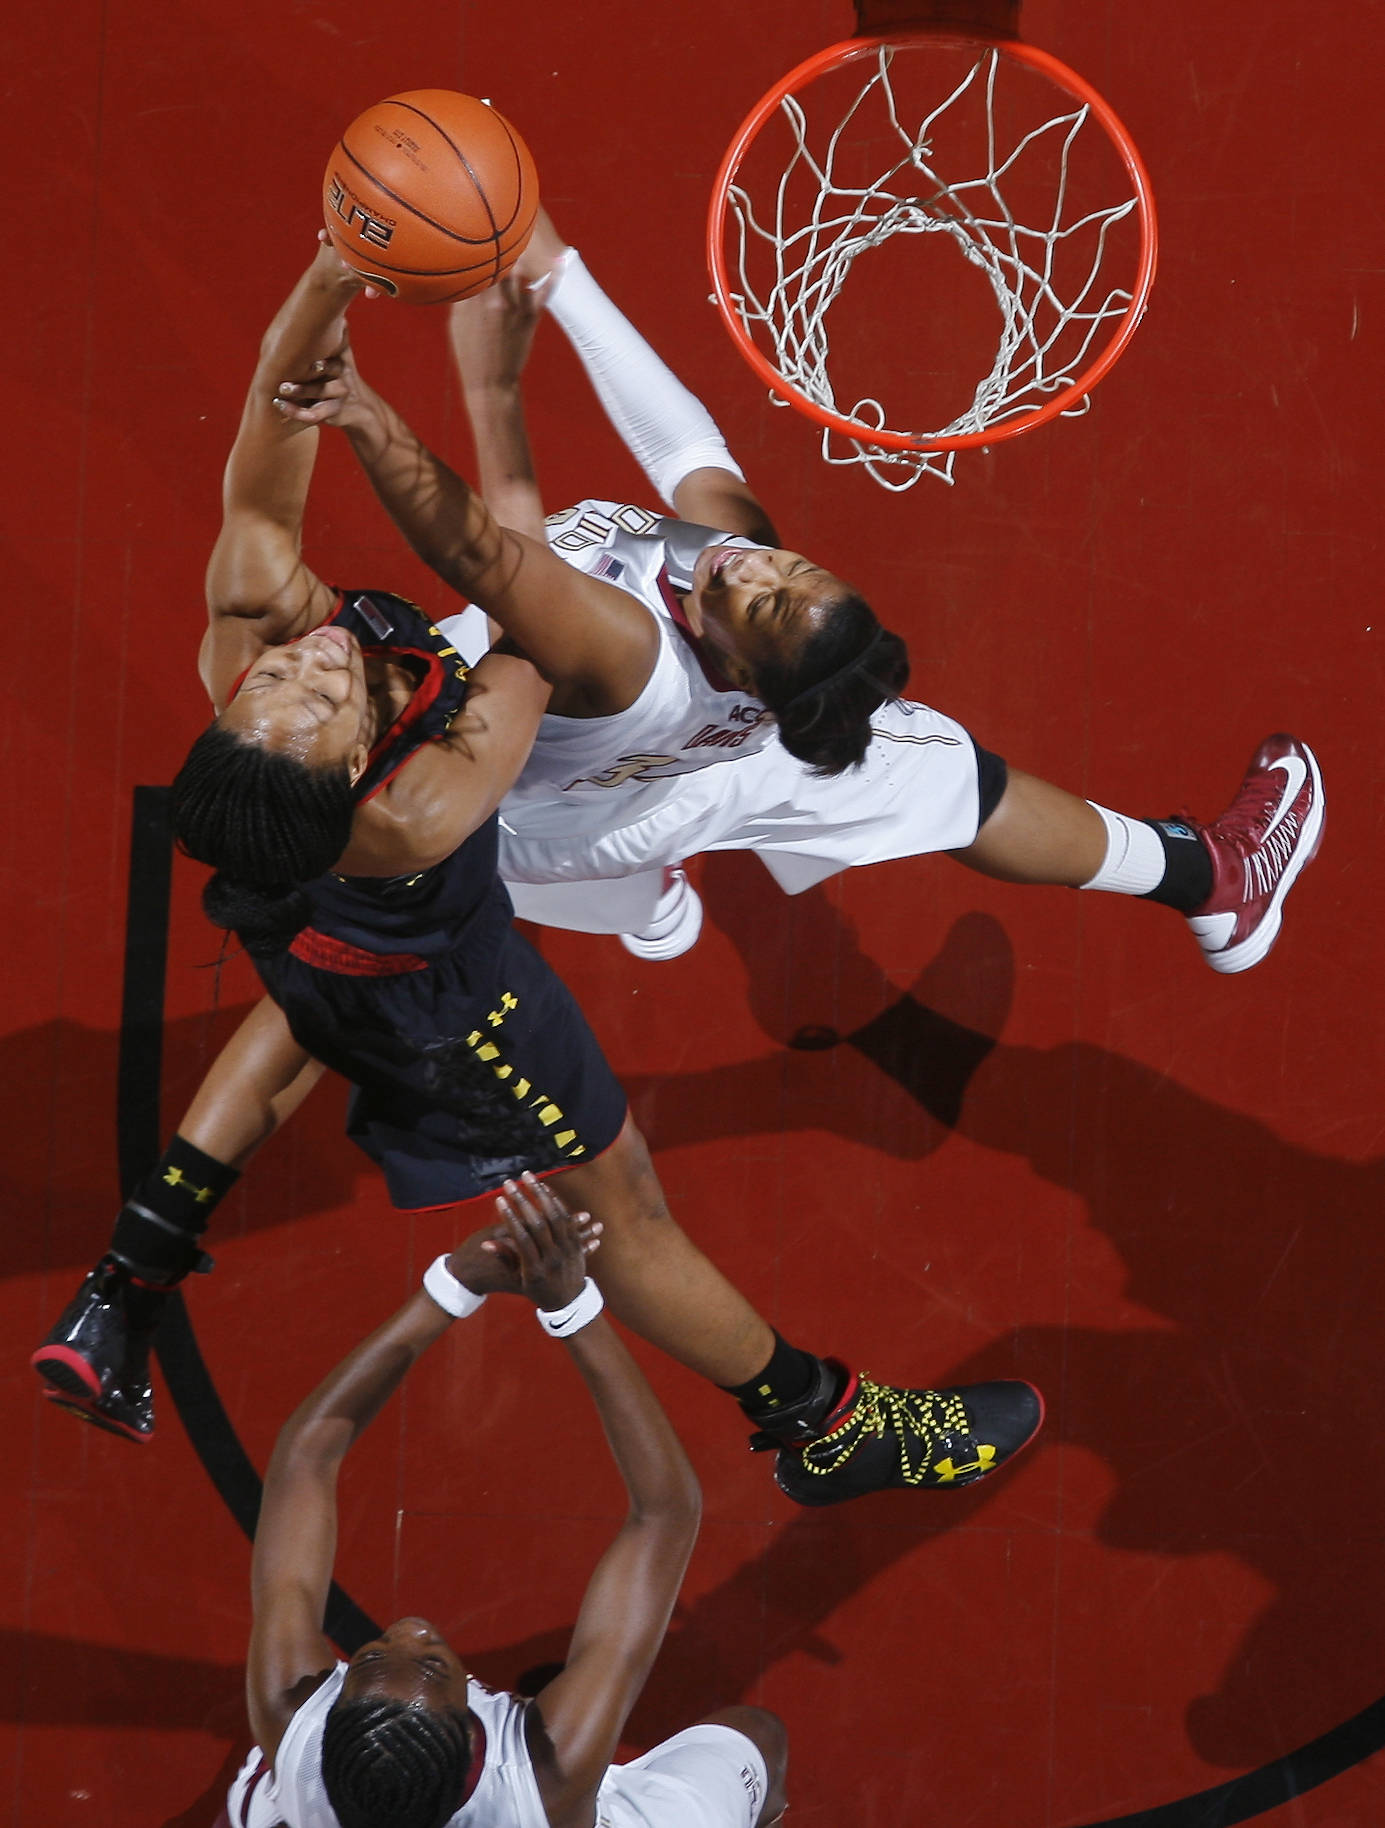 Maryland center Alicia DeVaughn, top left, makes a layup over the defense of Florida State forward Chelsea Davis, top right, in the first half. (AP Photo/Phil Sears)